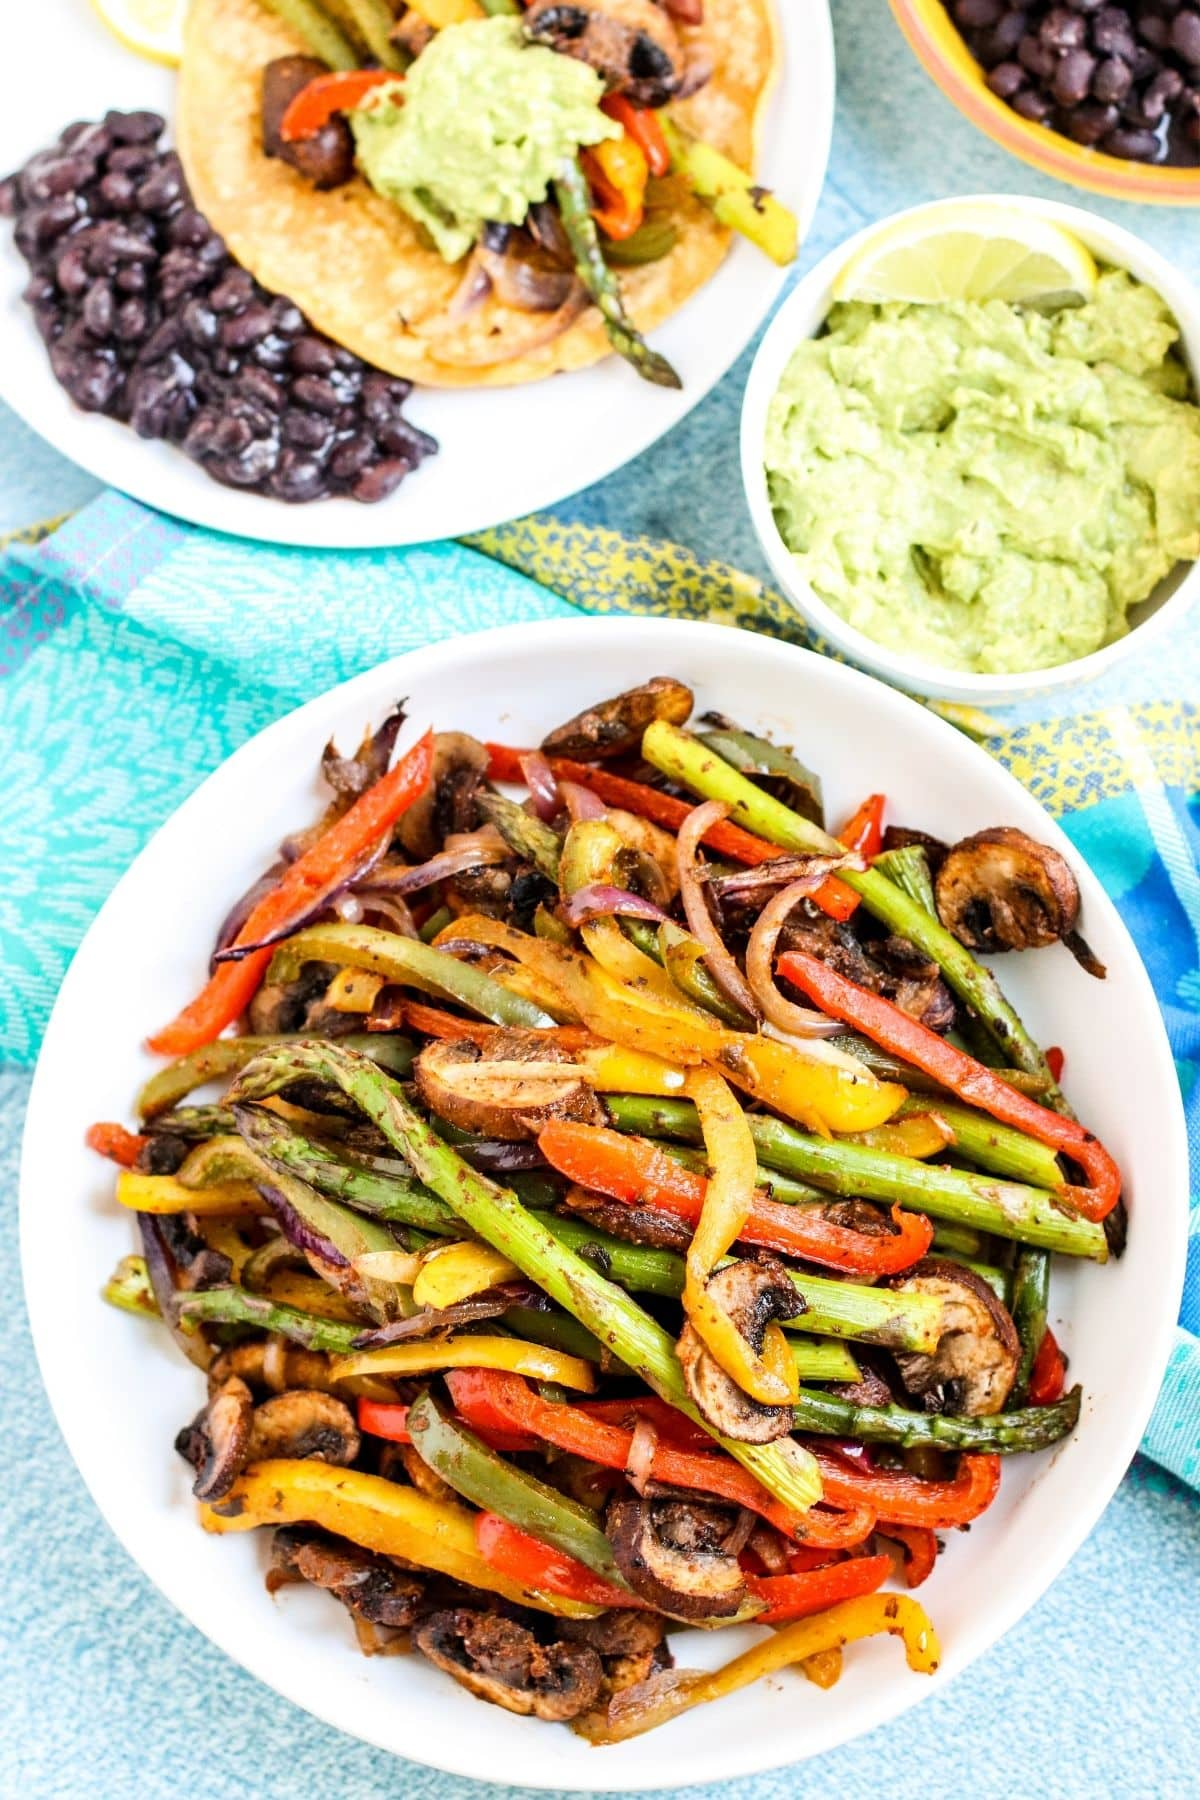 Overhead of platter of veggie fajitas with bowl of guacamole and dinner plate on the side